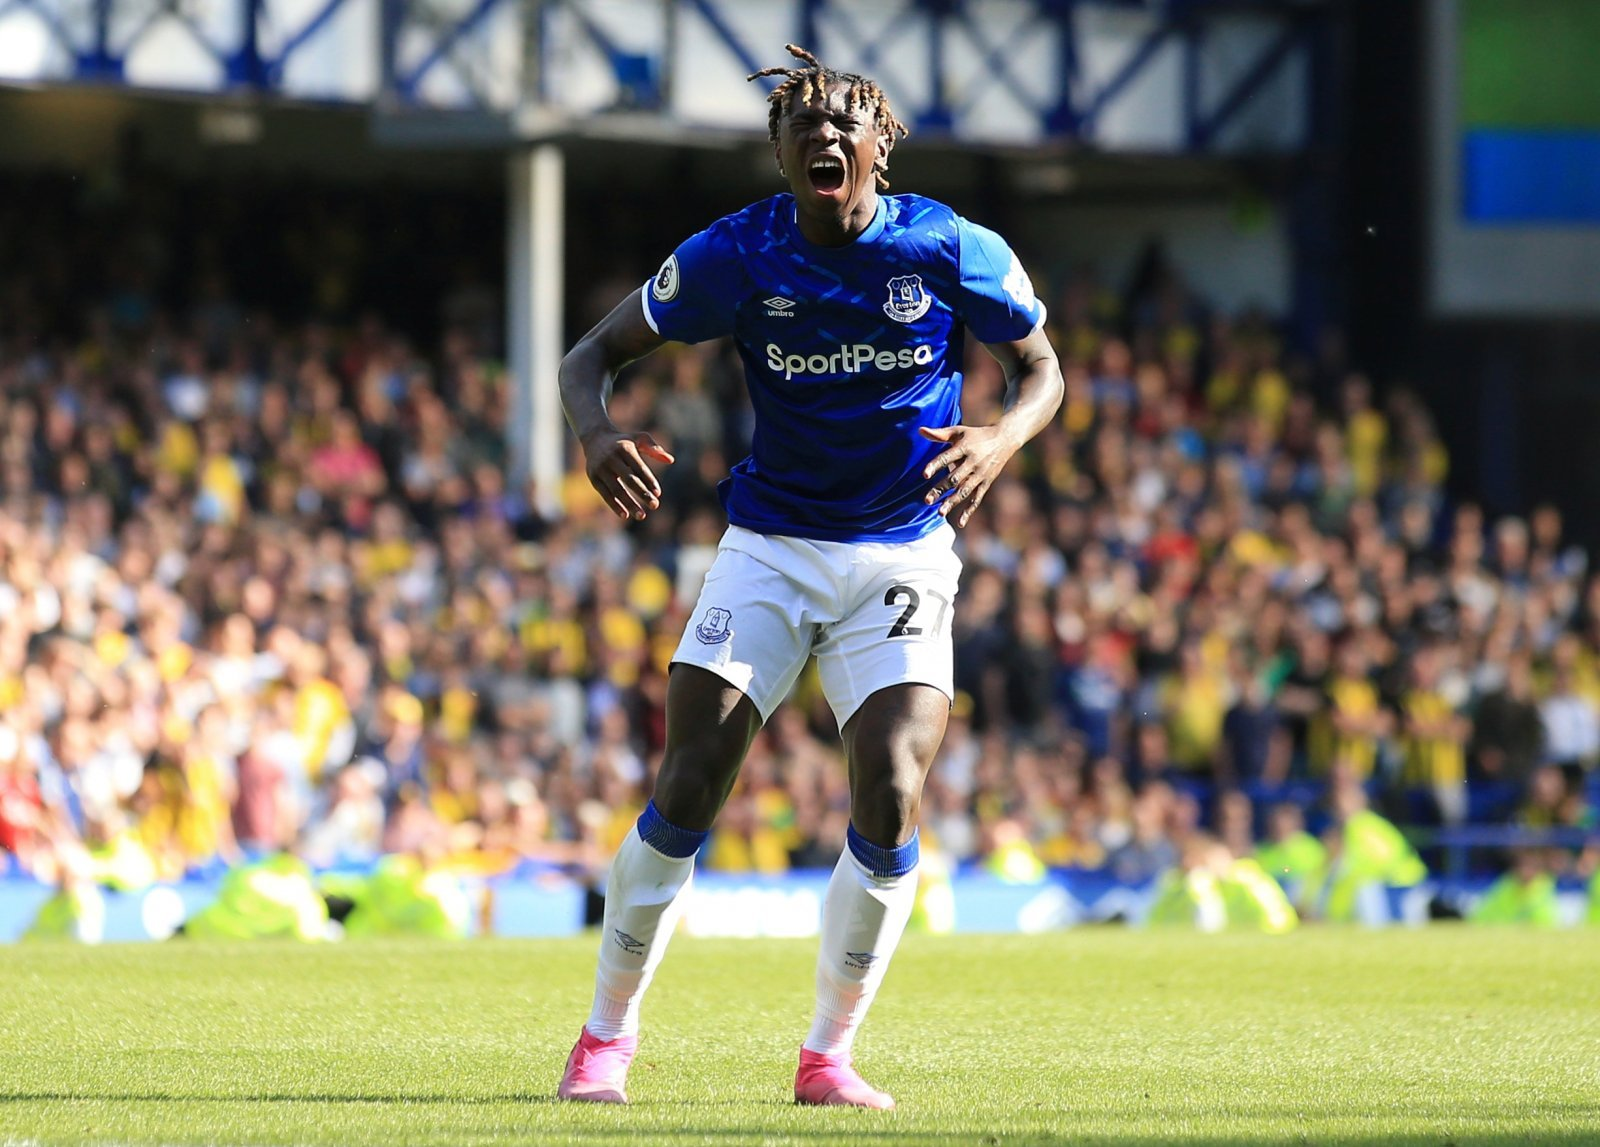 Everton: Kean will take Calvert-Lewin's place, according to Danny Mills